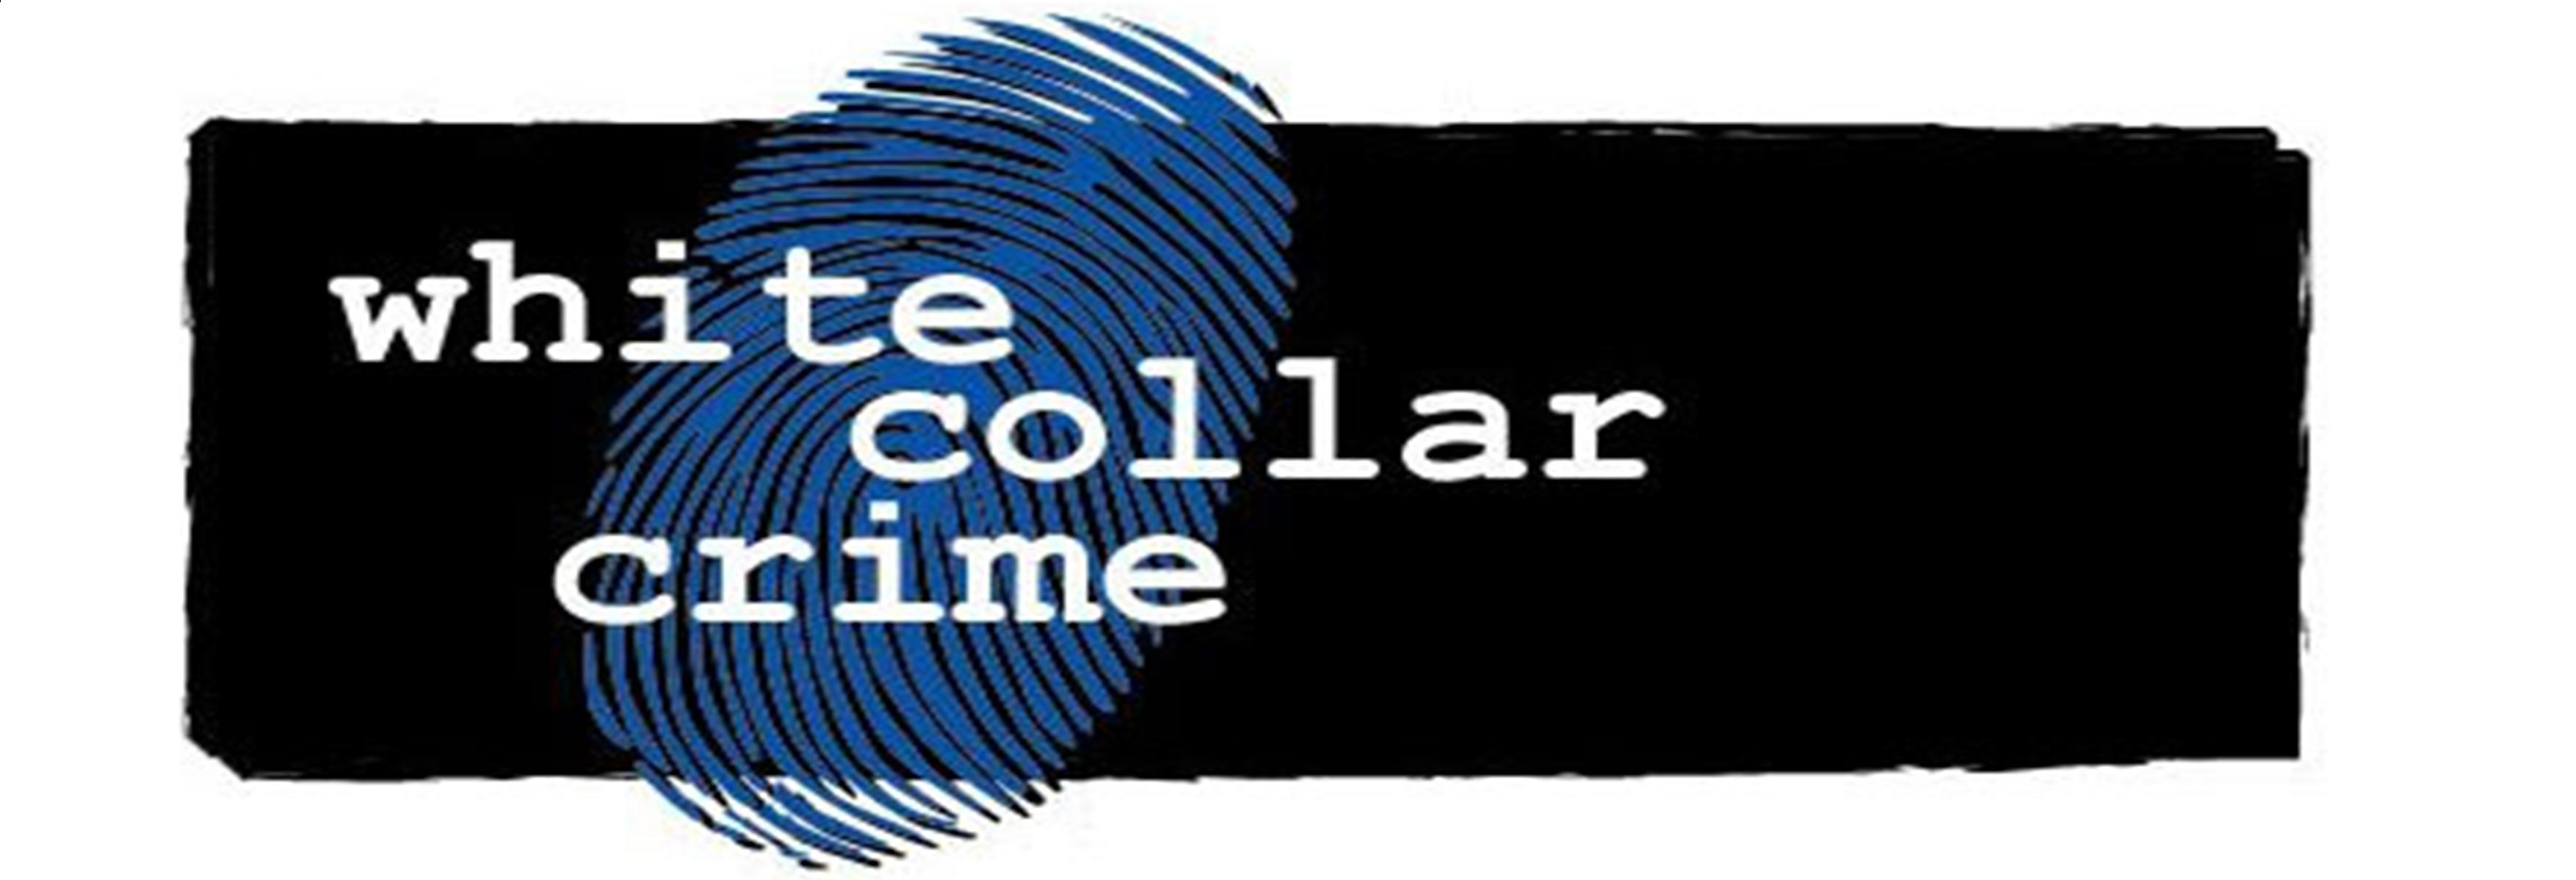 essay on white collar crime essay on the concept of white collar essay on the concept of white collar crime